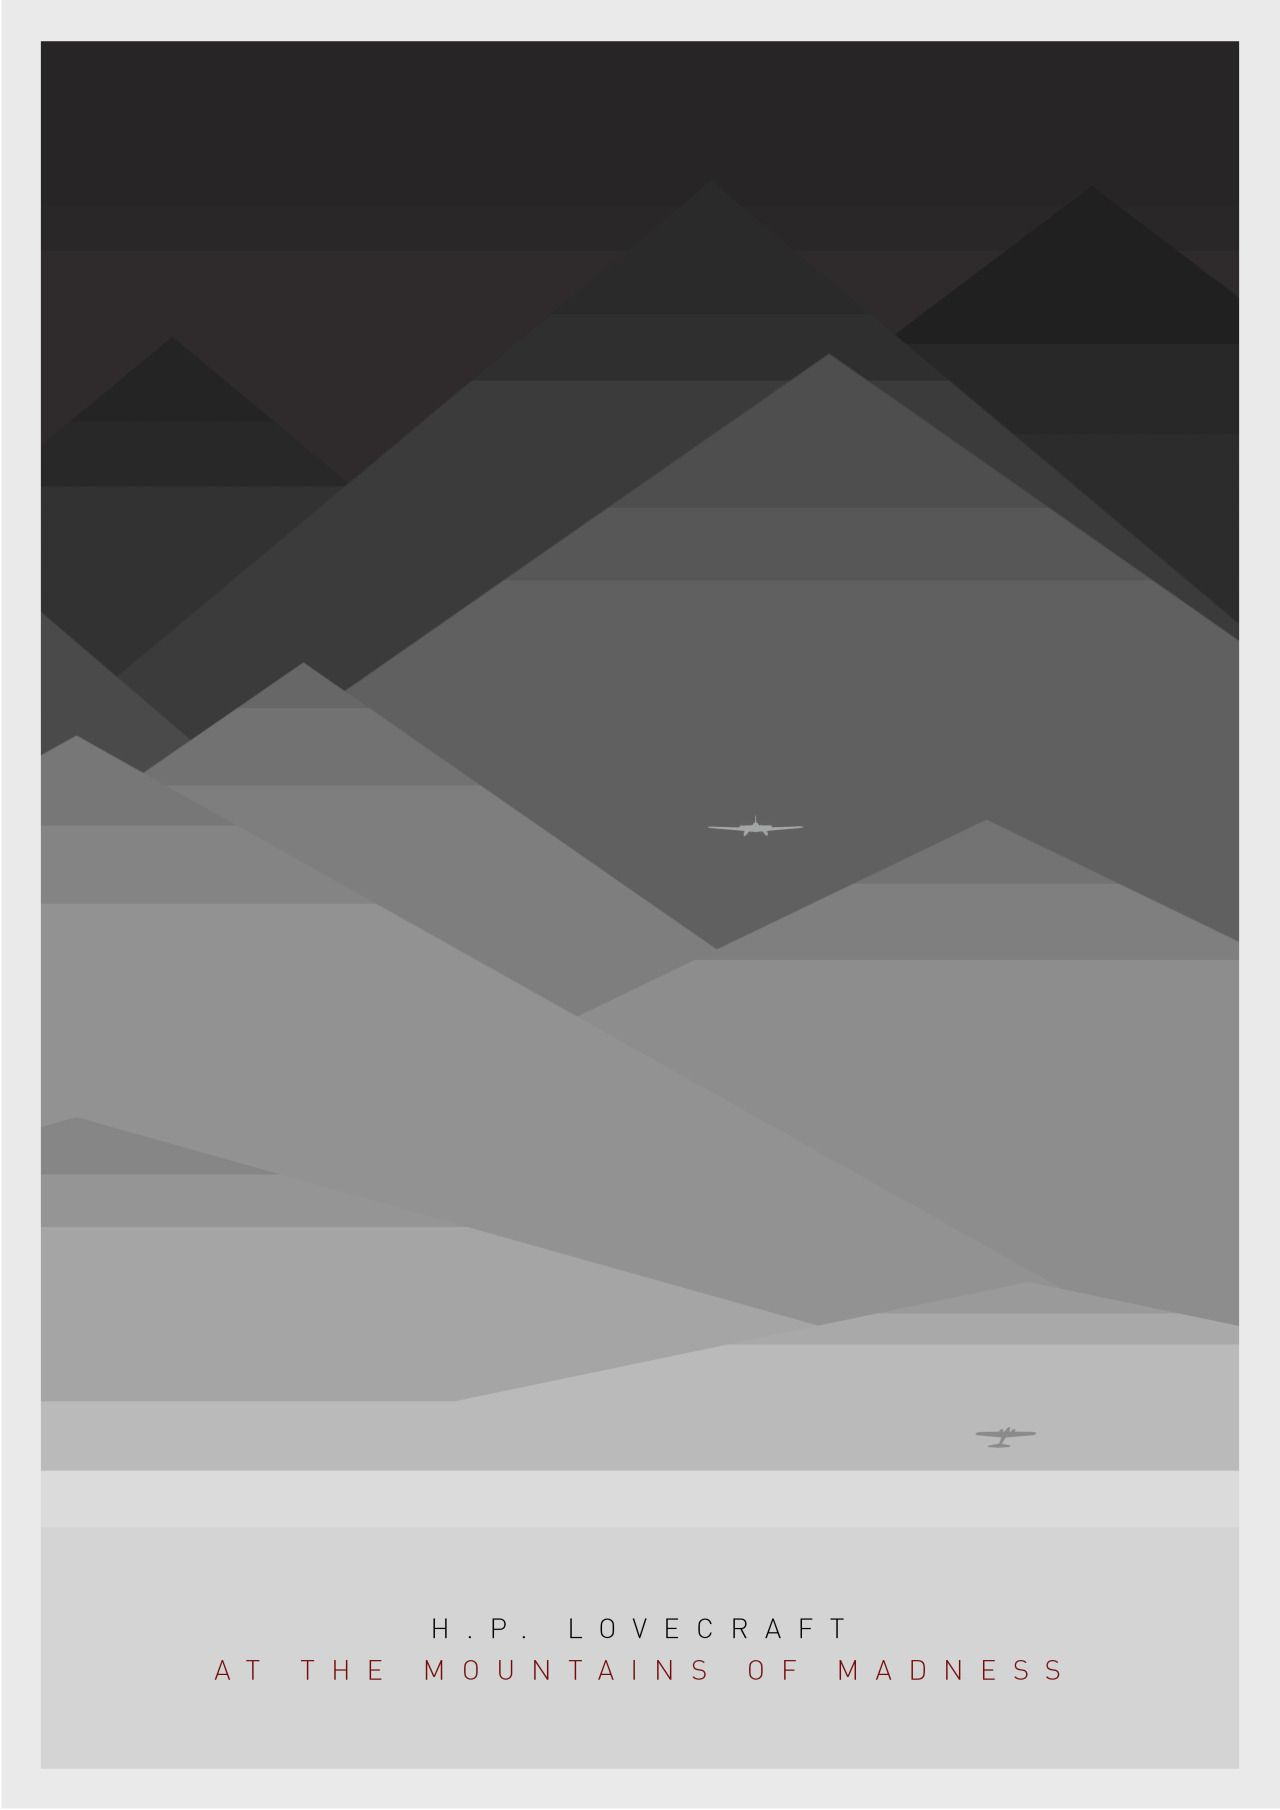 Lovecraftian At the mountains of Madness Minimal Poster